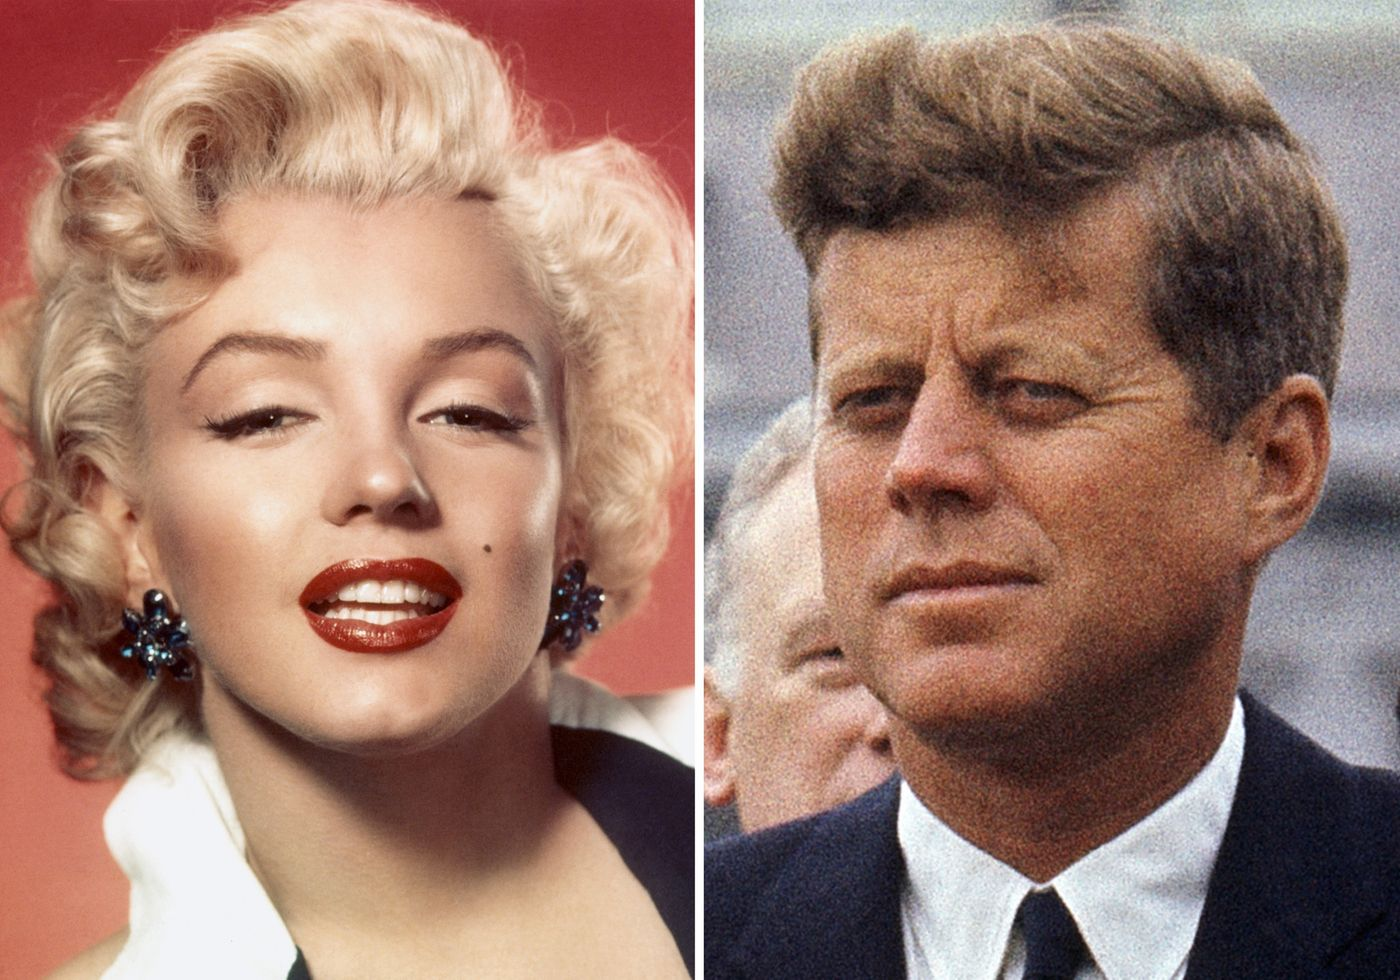 CELEBRITY: JFK and Marilyn Monroe tryst house for sale for $5 million